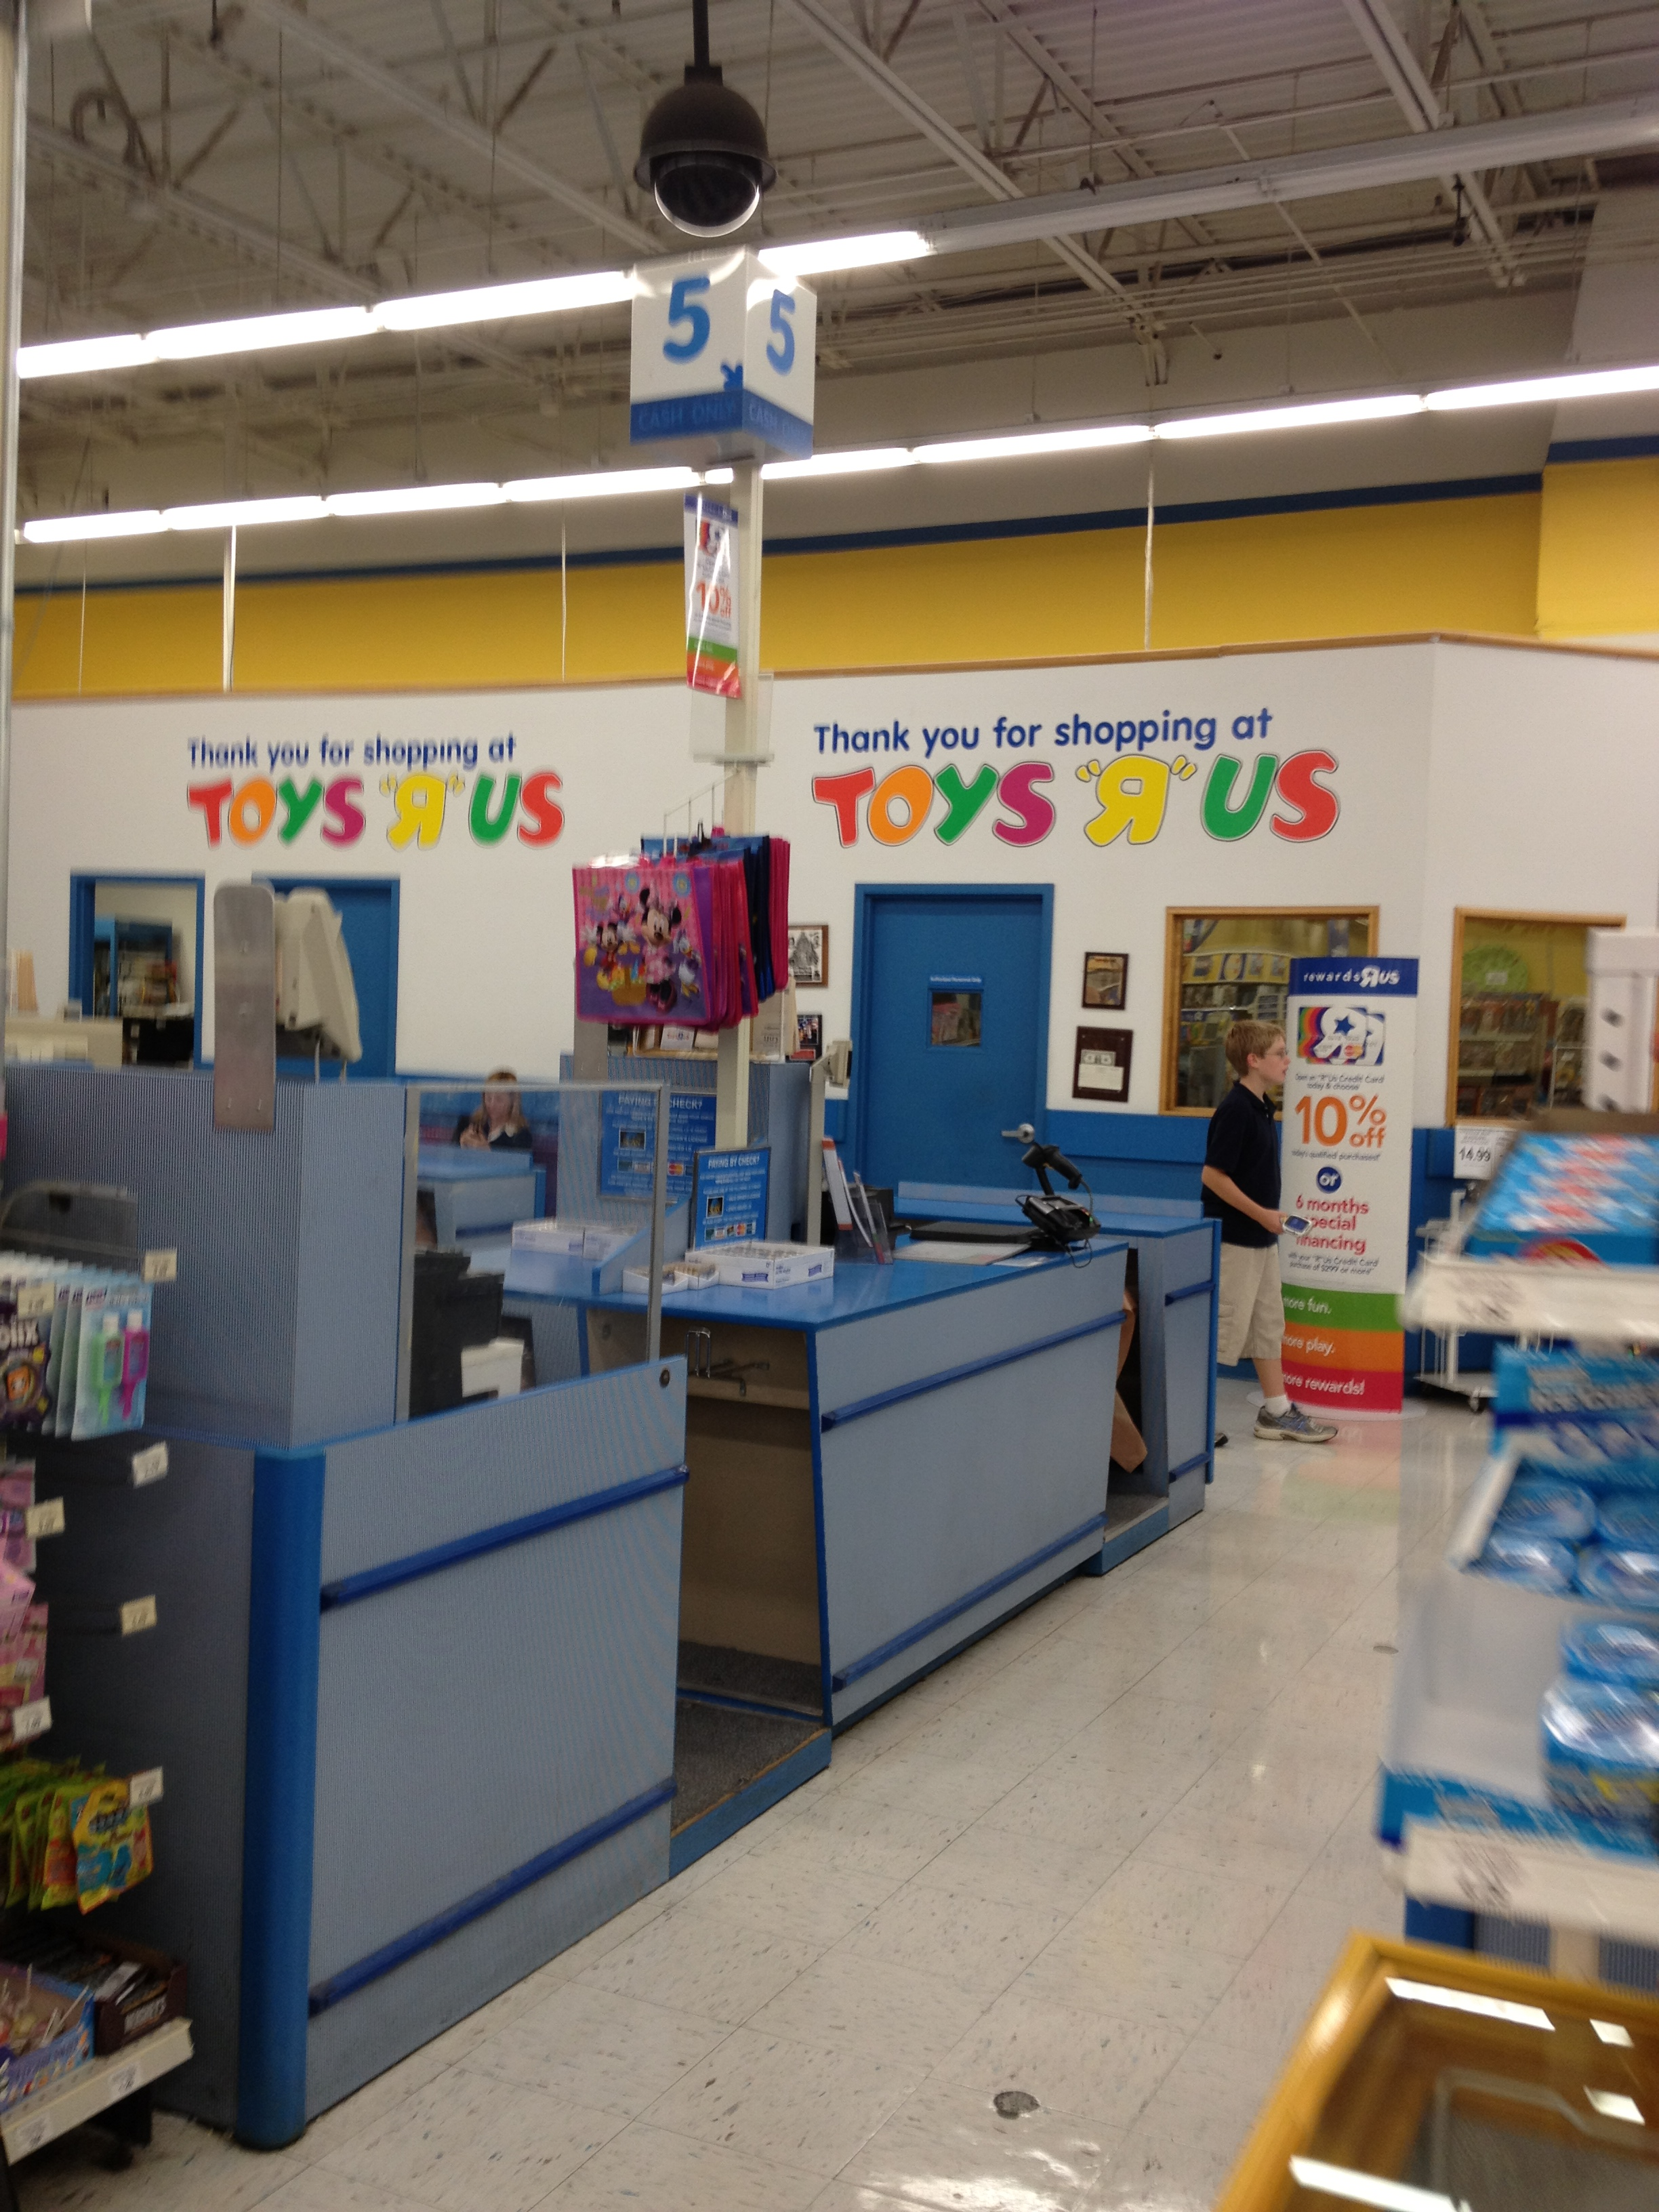 Toys R Us Cot Bed Mattress